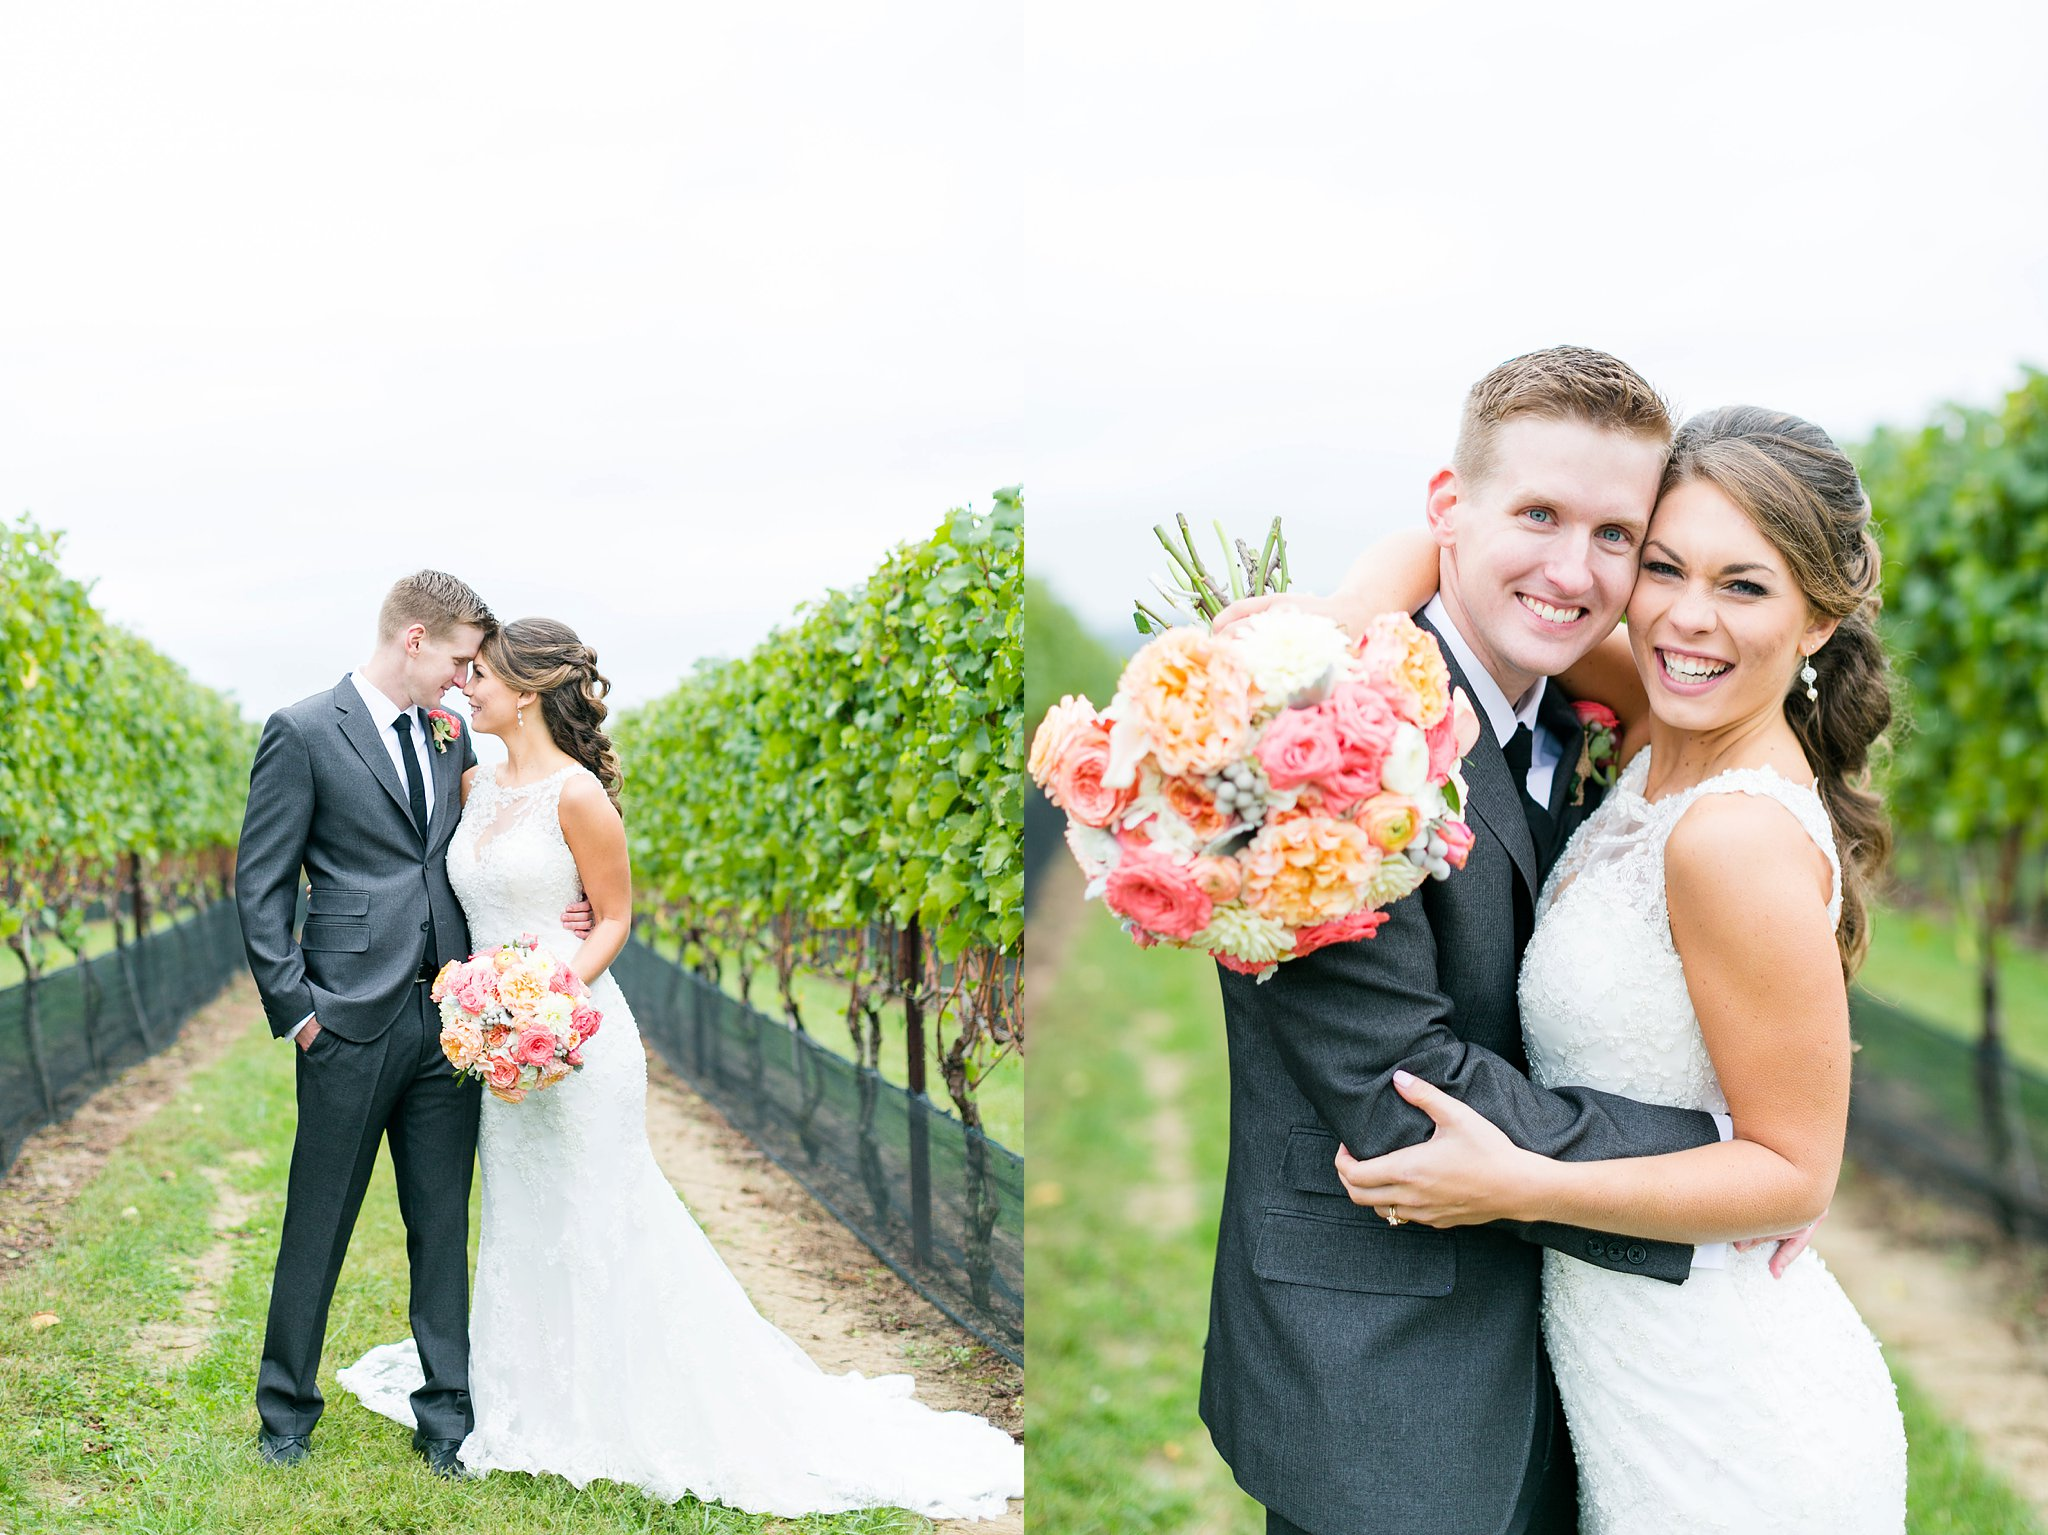 Stone Tower Winery Wedding Photos Virginia Wedding Photographer Megan Kelsey Photography Sam & Angela-214.jpg